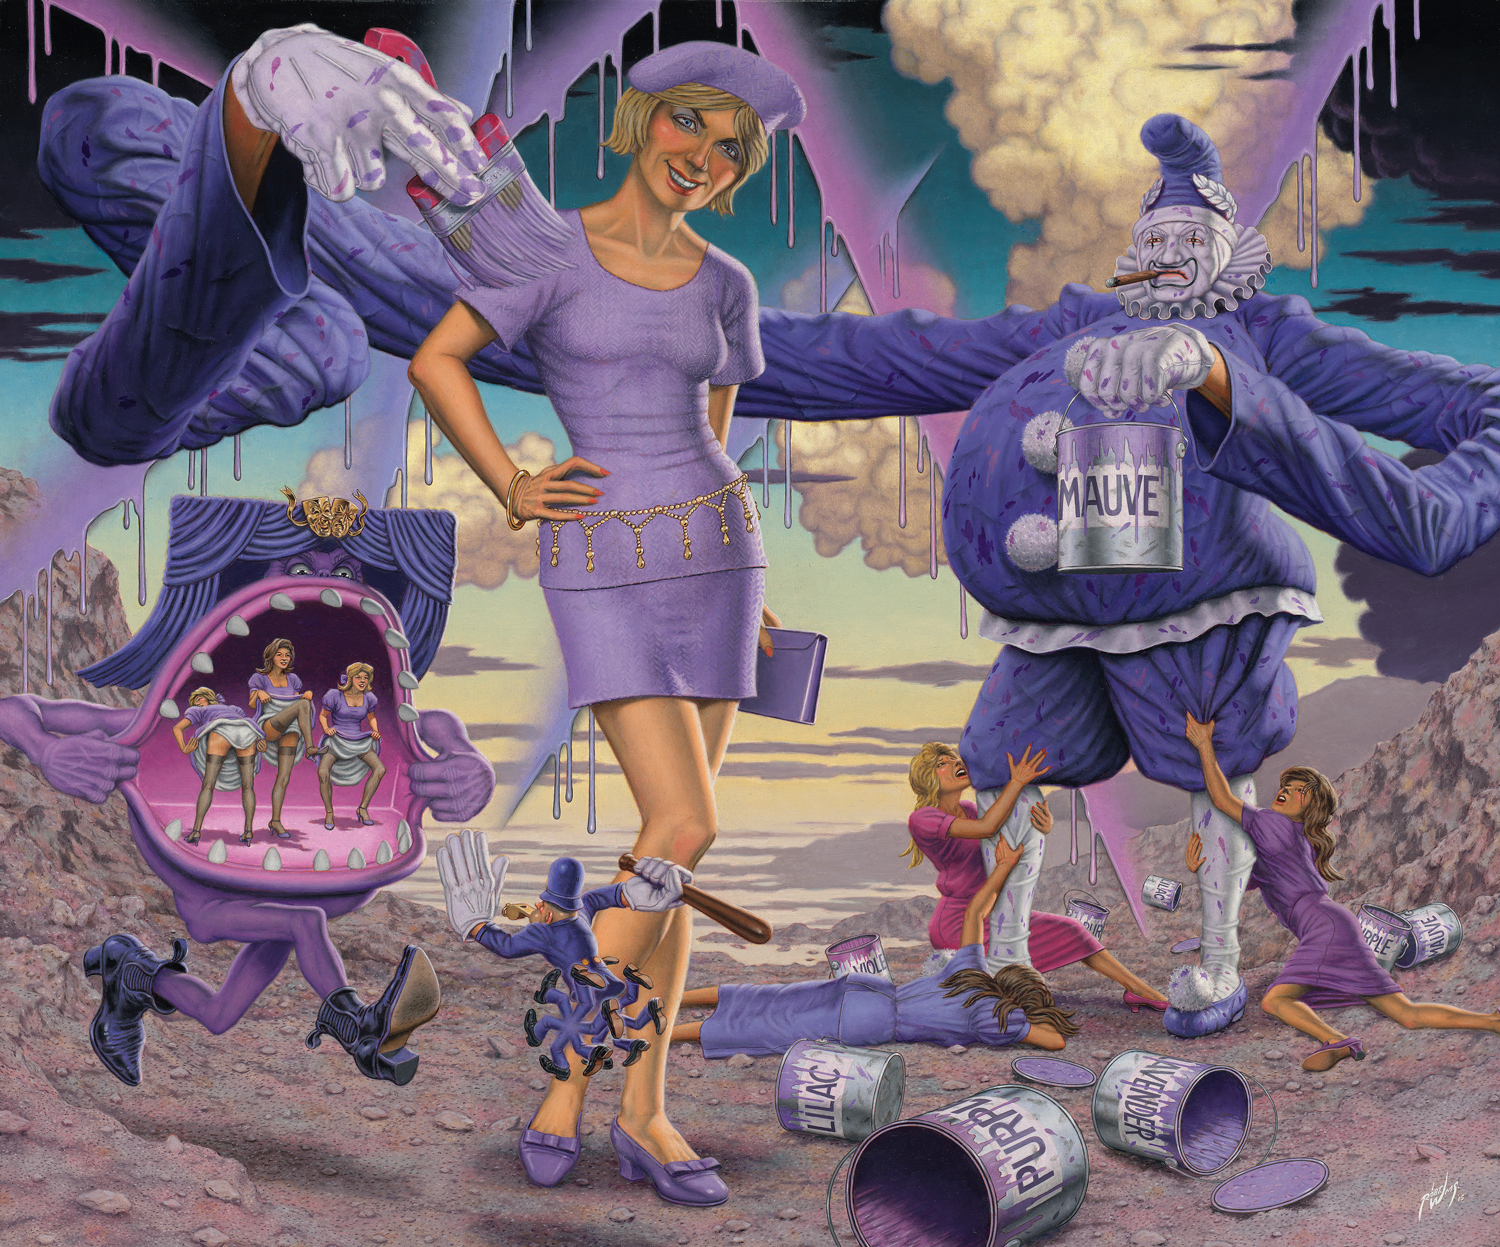 robert-williams-purple-as-an-inexplicable-poetic-force-2015-oil-on-canvas-30-x-36-inches-museum-art-exhibits-slang-aesthetics-carousel-14575-image.jpg